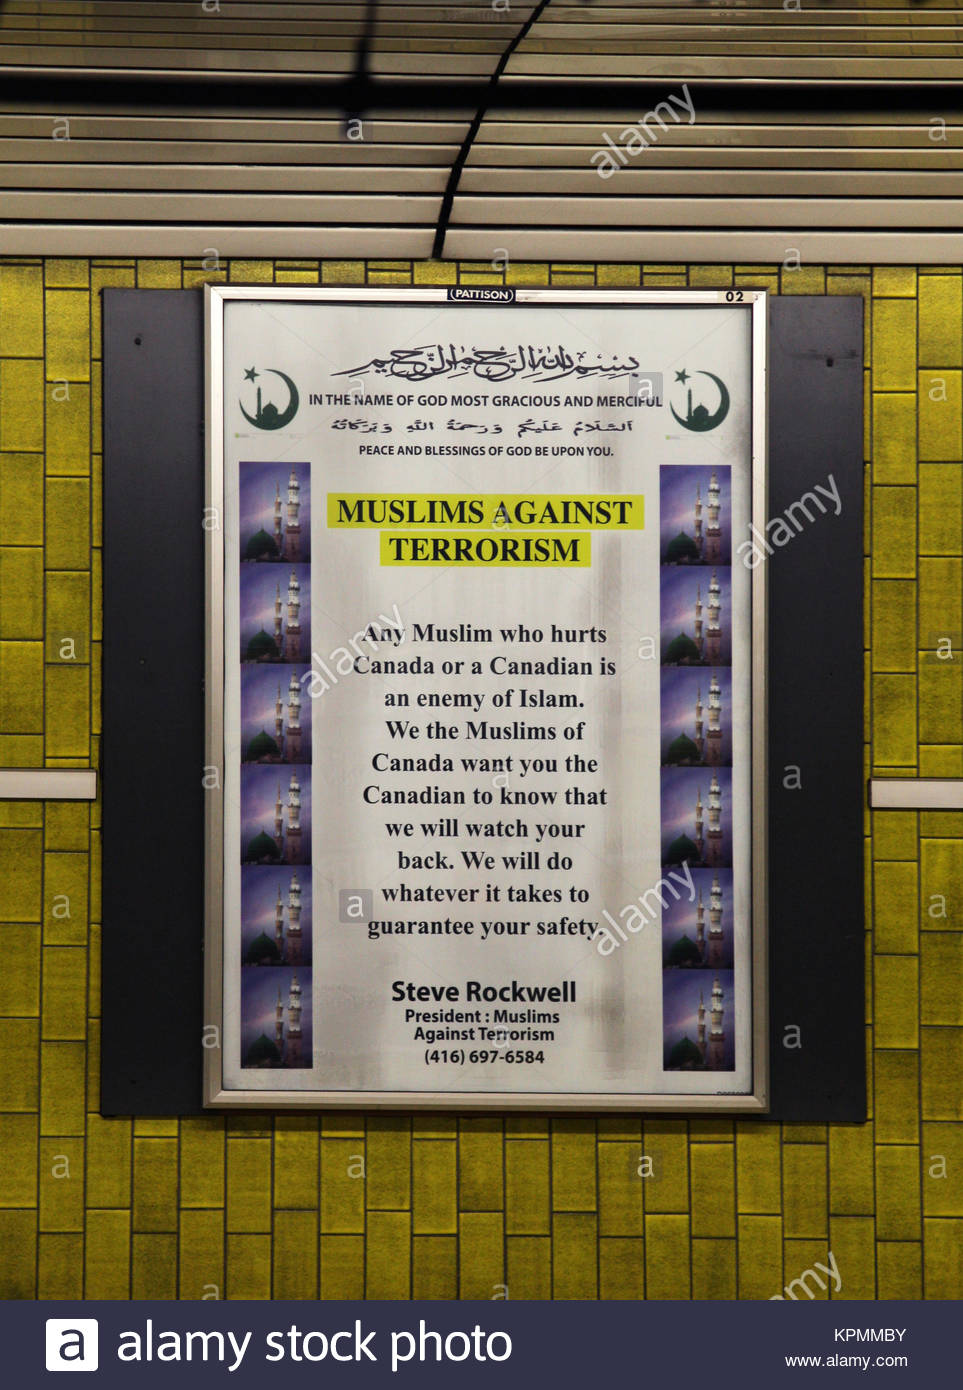 Muslims Against Terrorism poster in Toronto, Canada. - Stock Image